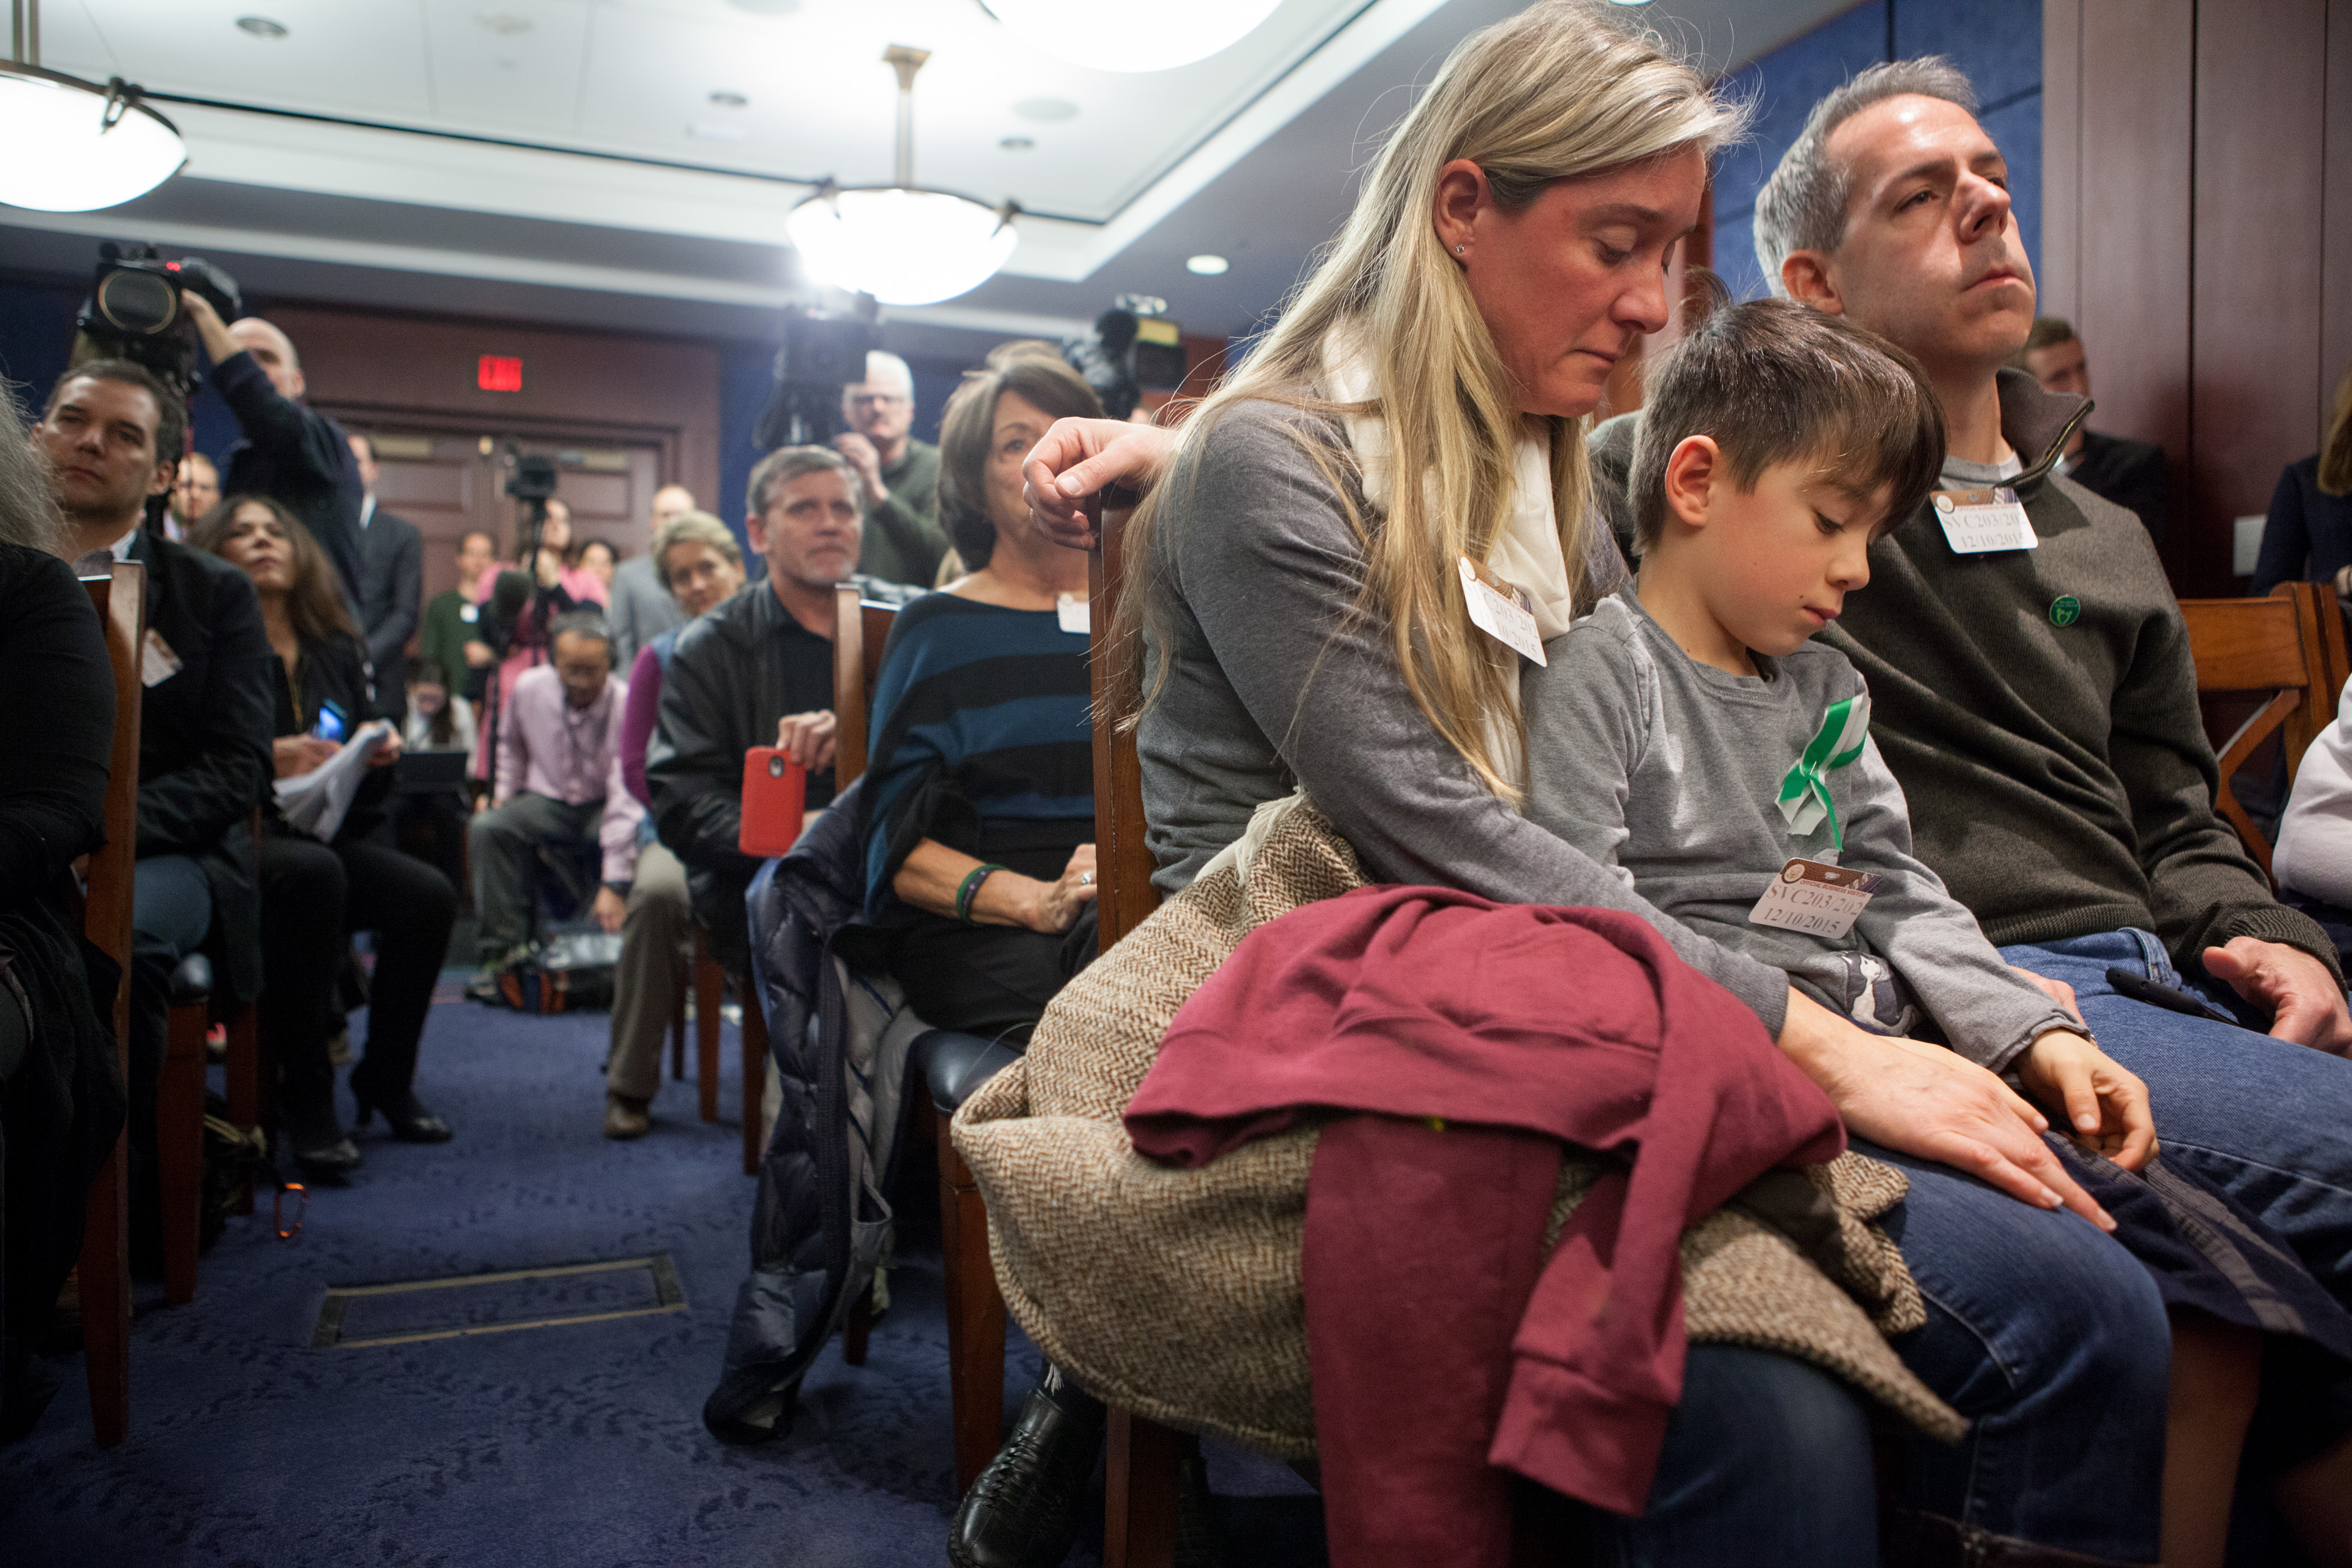 Rafe D'Agostino, 7, a second grader, sits between his parents Noelle and Paul D'Agostino during a press conference on Capitol Hill on Dec. 10.